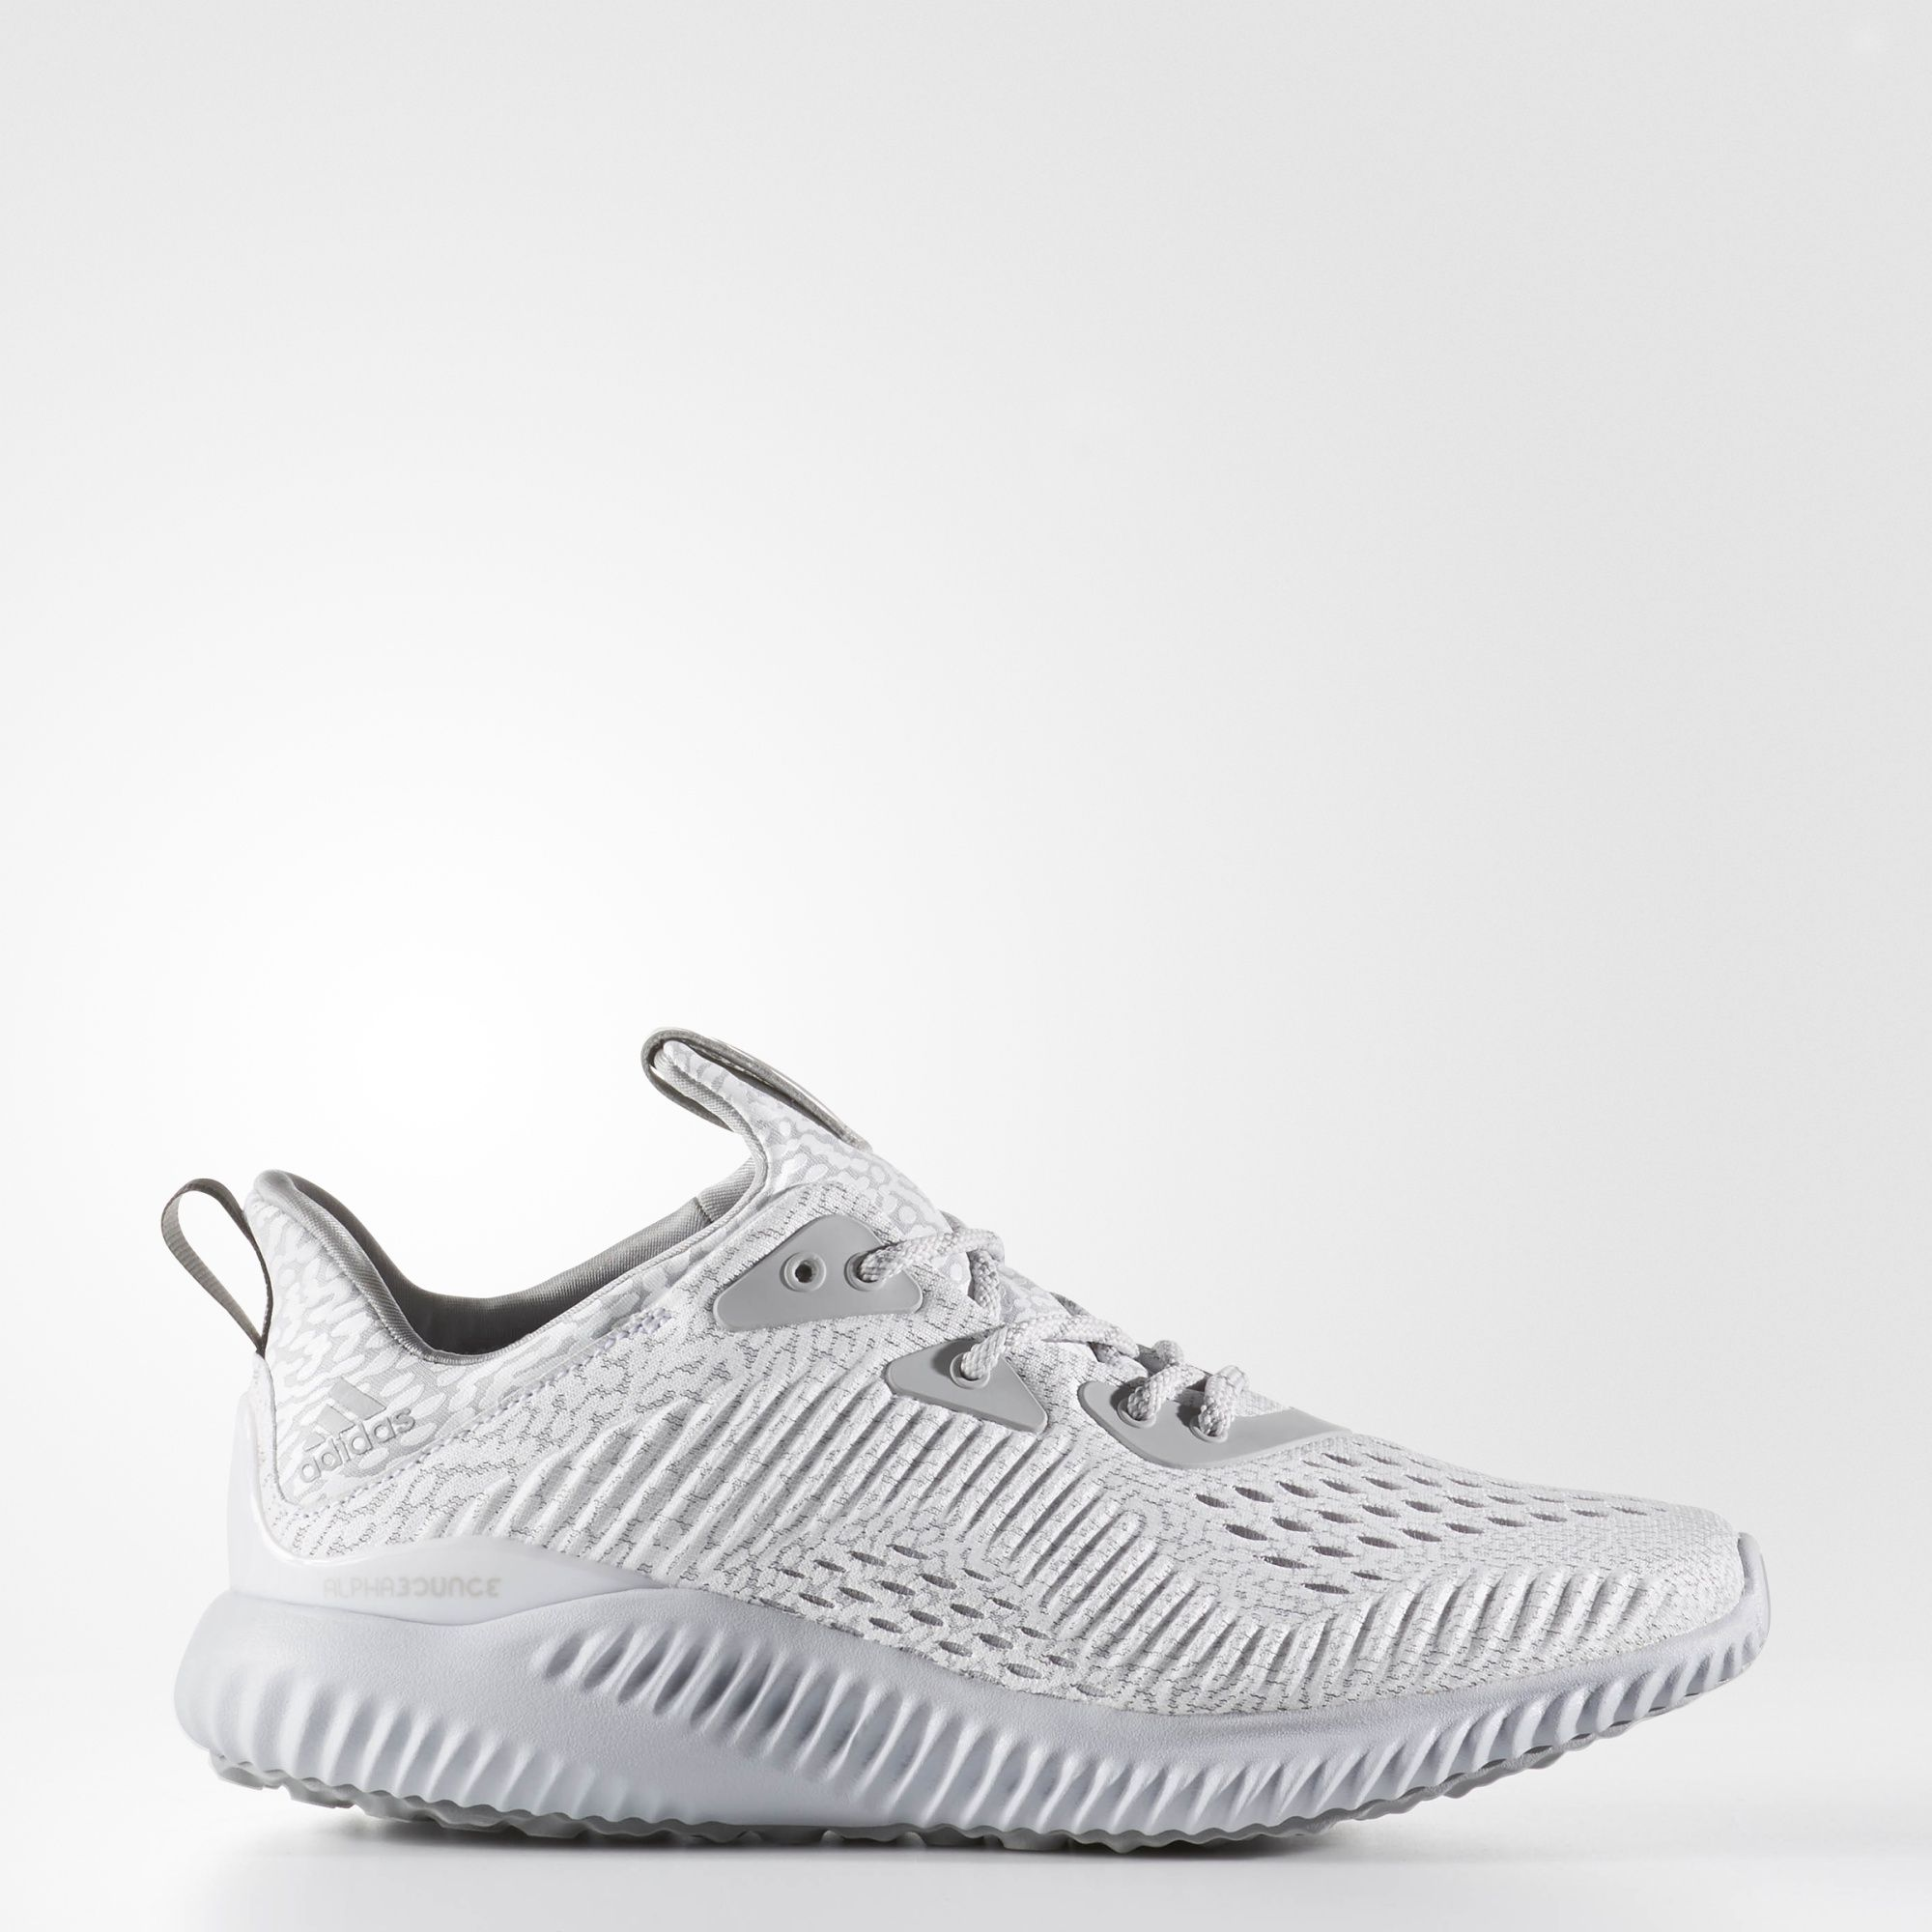 8a1b037d0f Alphabounce AMS Shoes | Fitness Gear and Sneakers | Adidas running ...